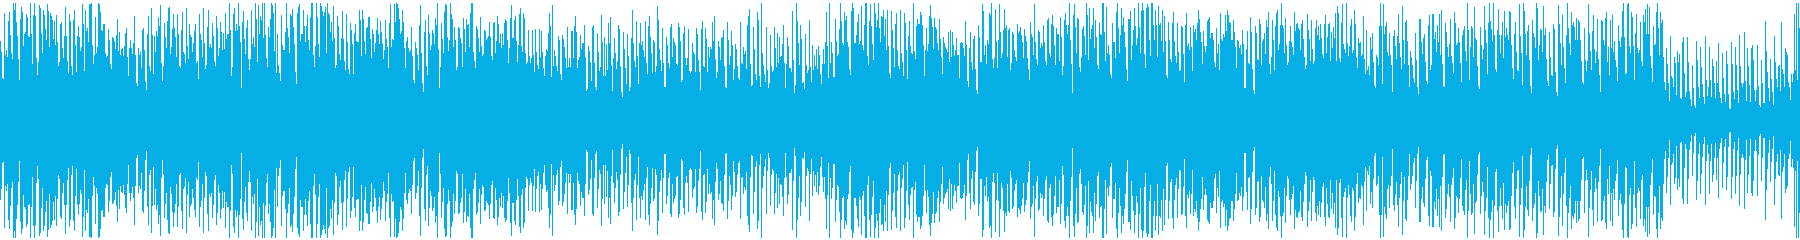 A refreshing commercial style of whistling and fun pop's reproduced waveform